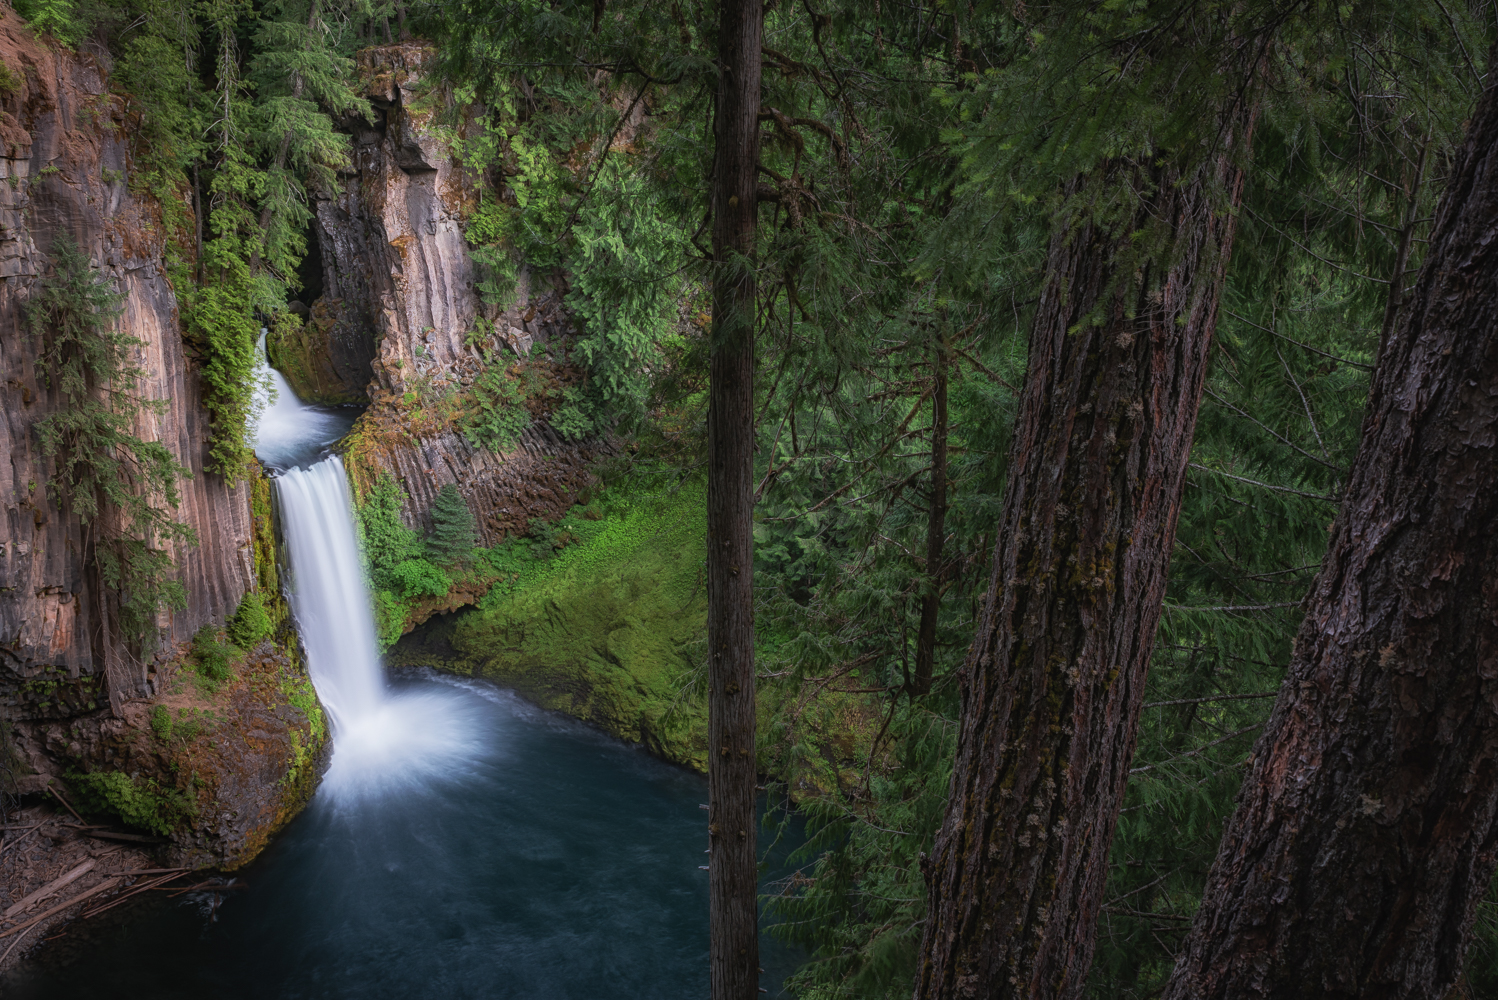 No explanation needed: the magnificent Toketee Falls